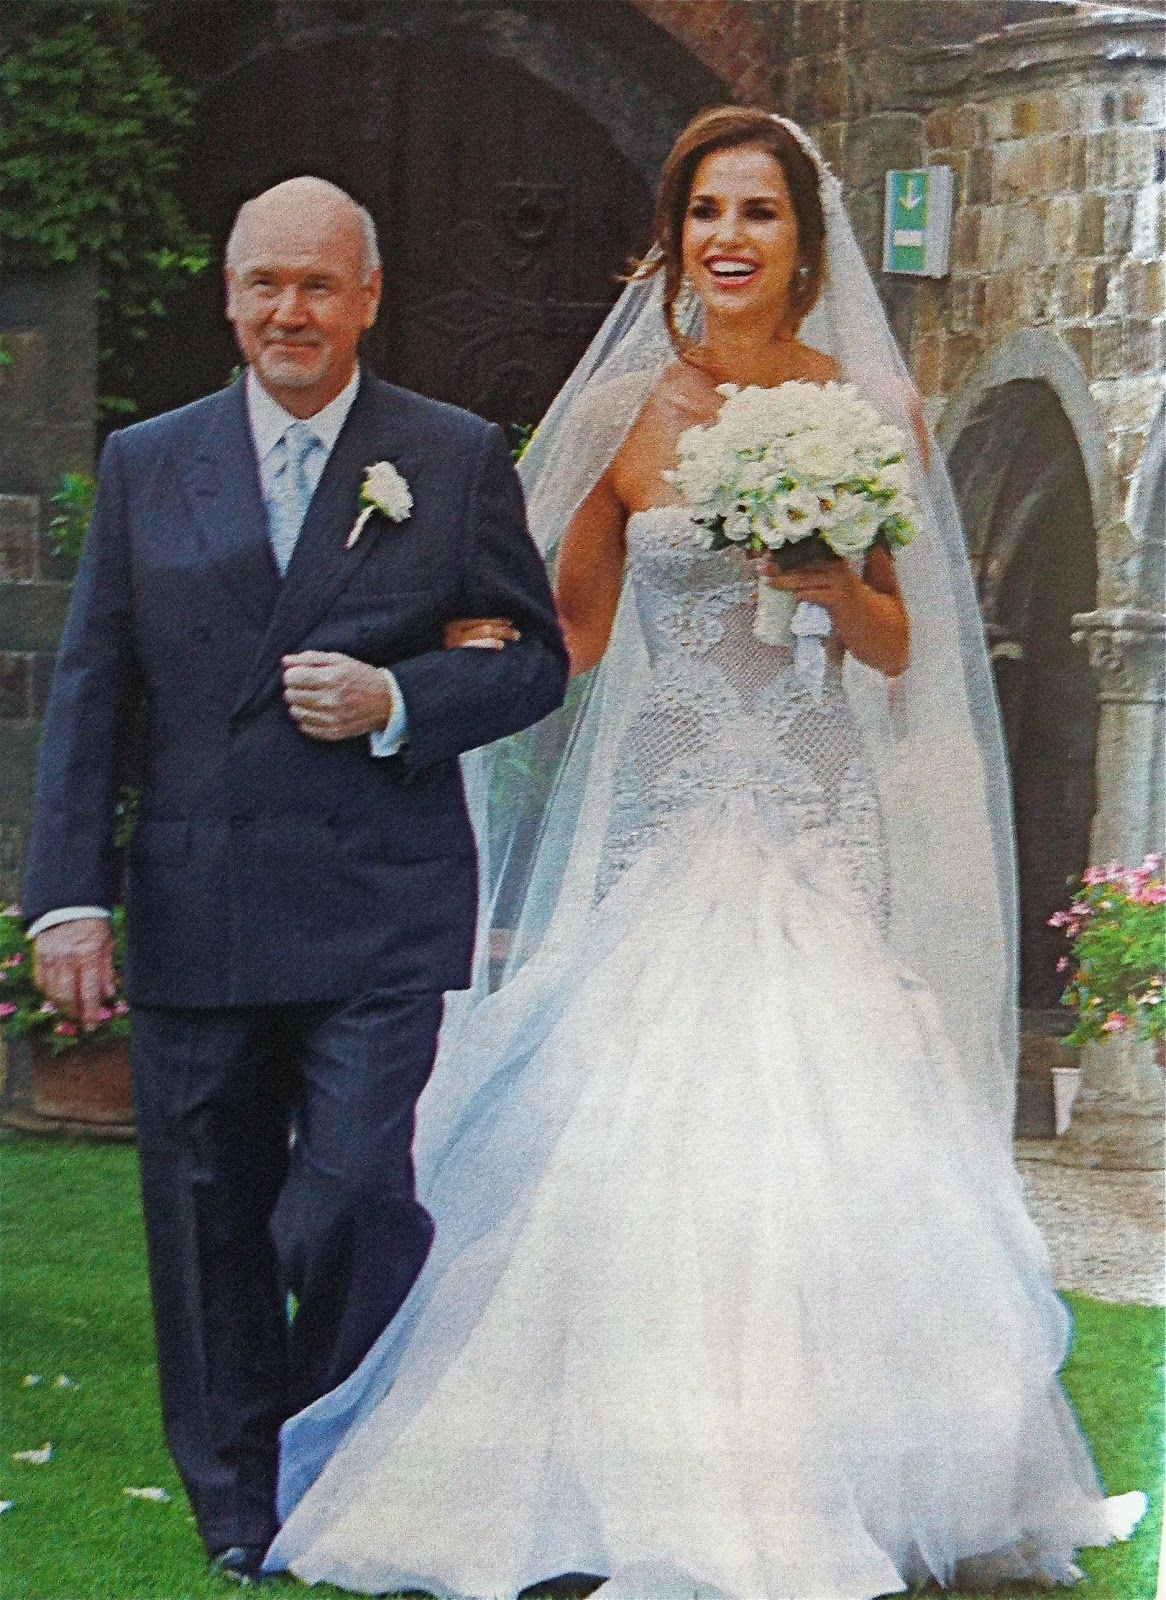 Chasing Rainbows Kissing Frogs Brian Mcfadden Weds Vogue Williams